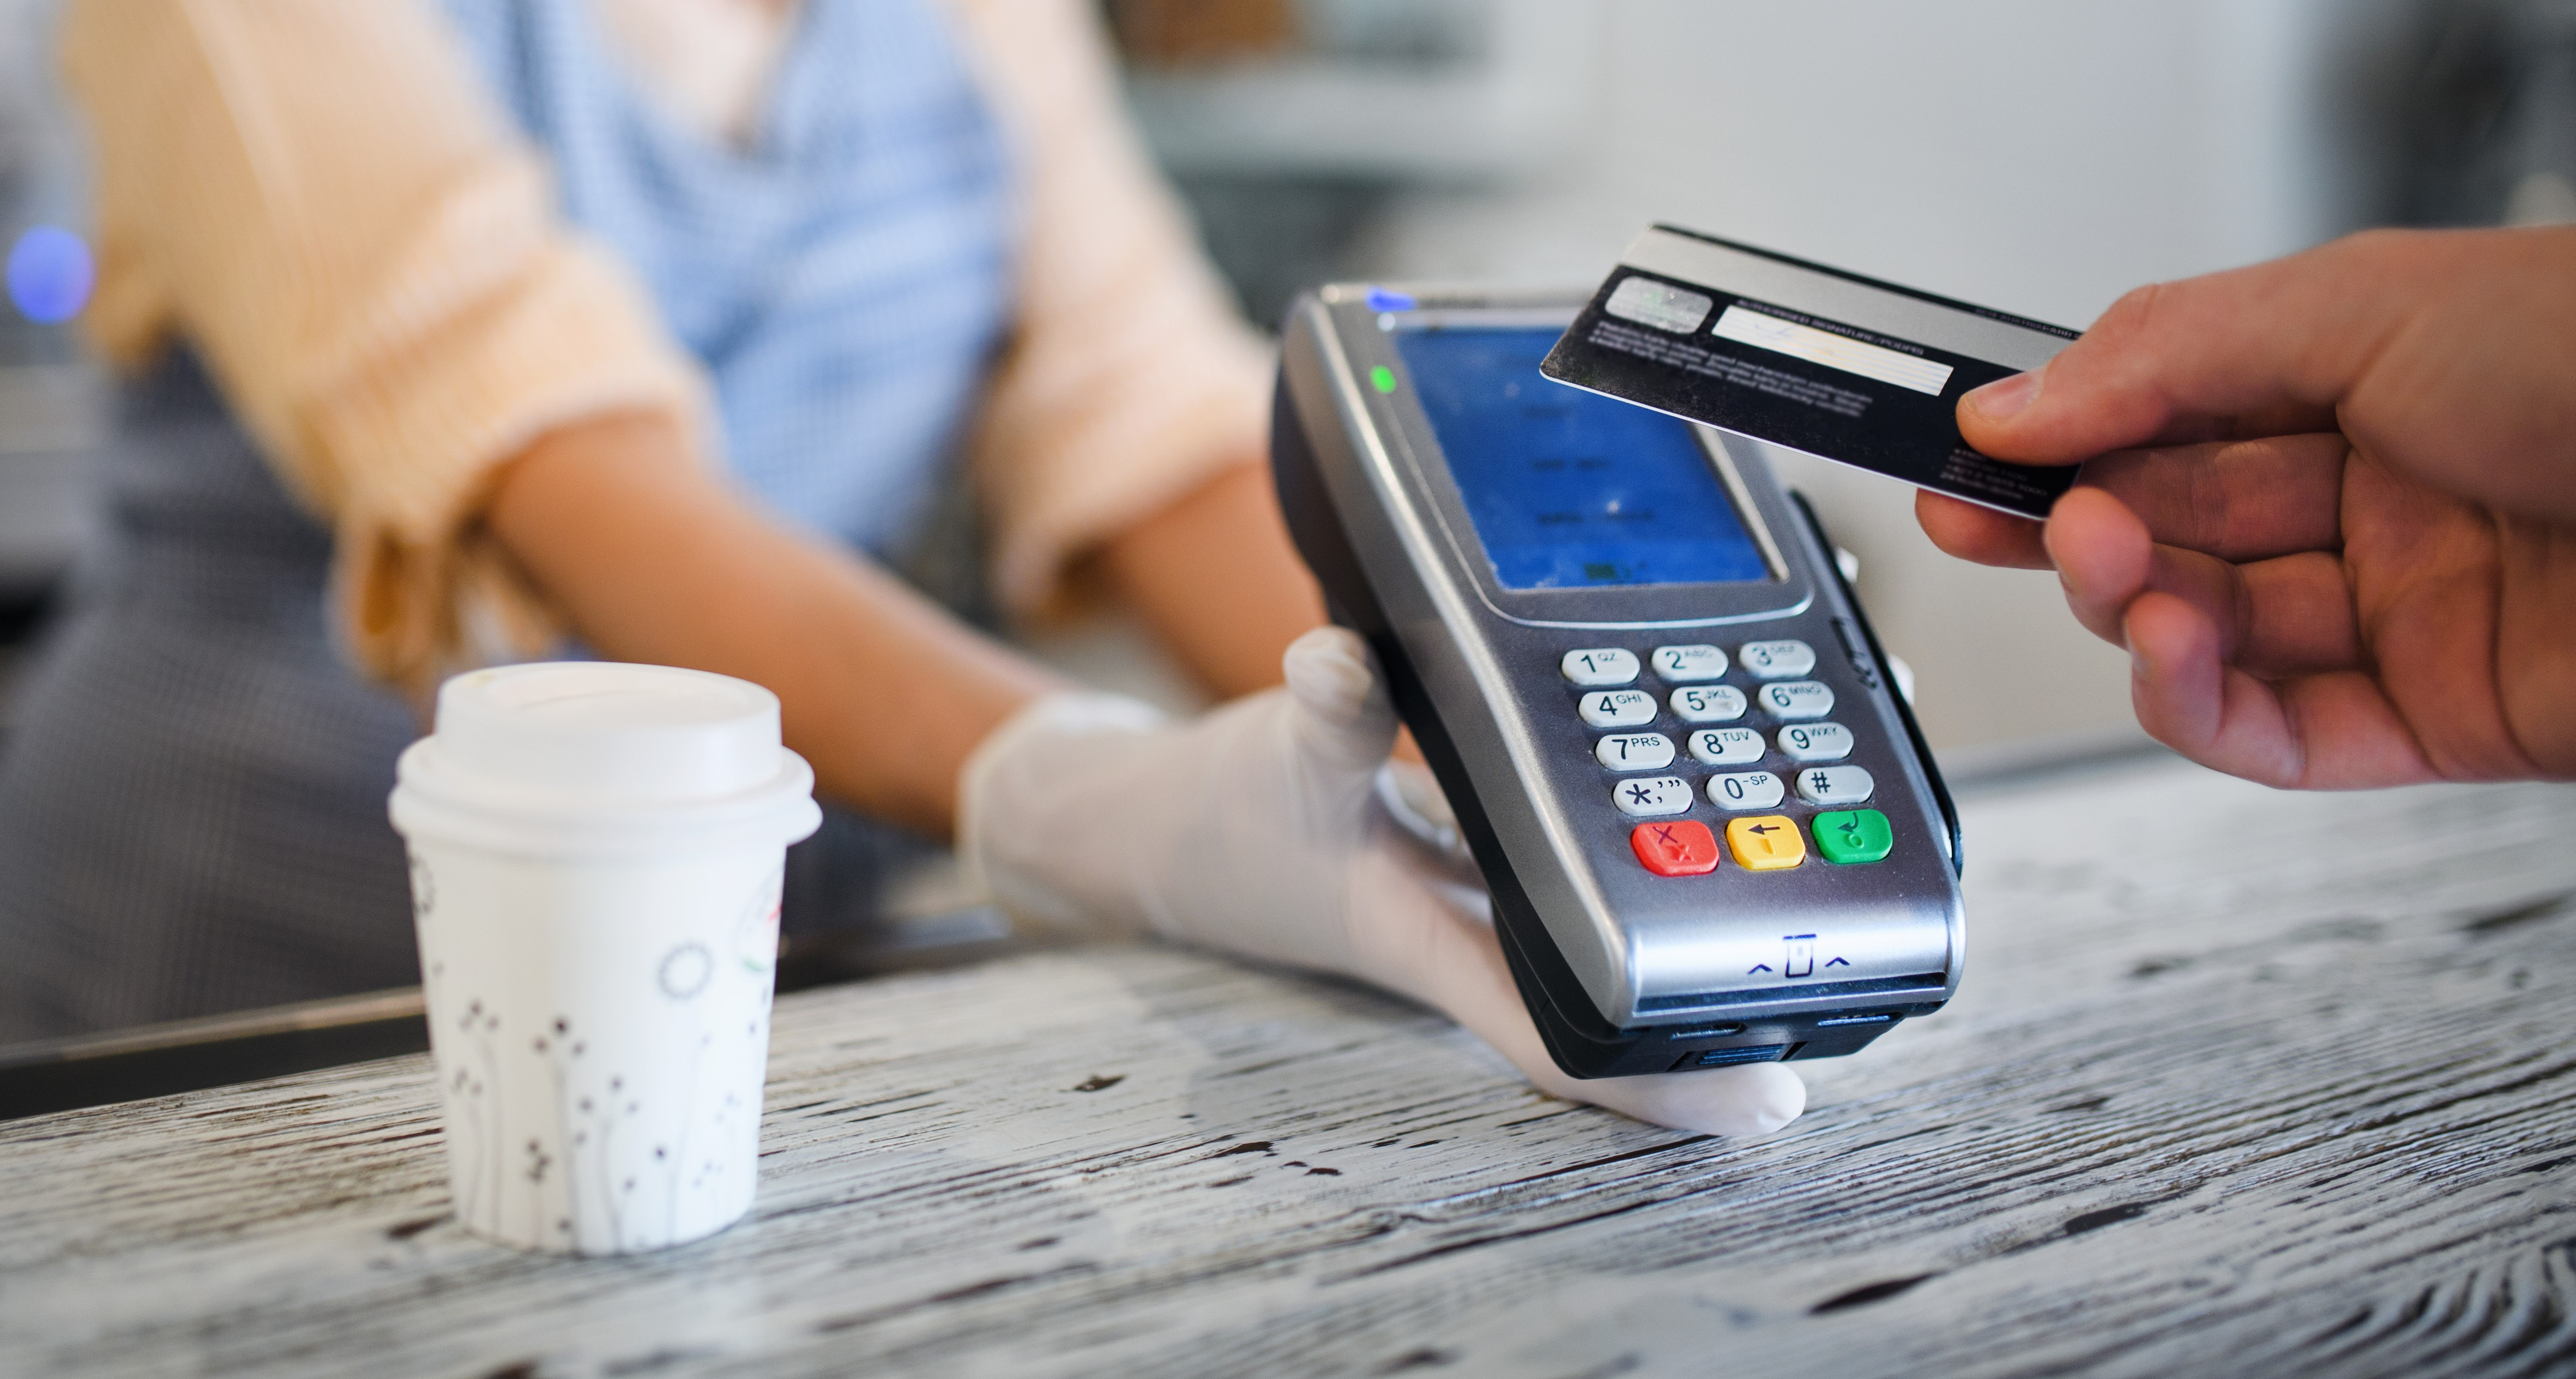 Contactless card in action